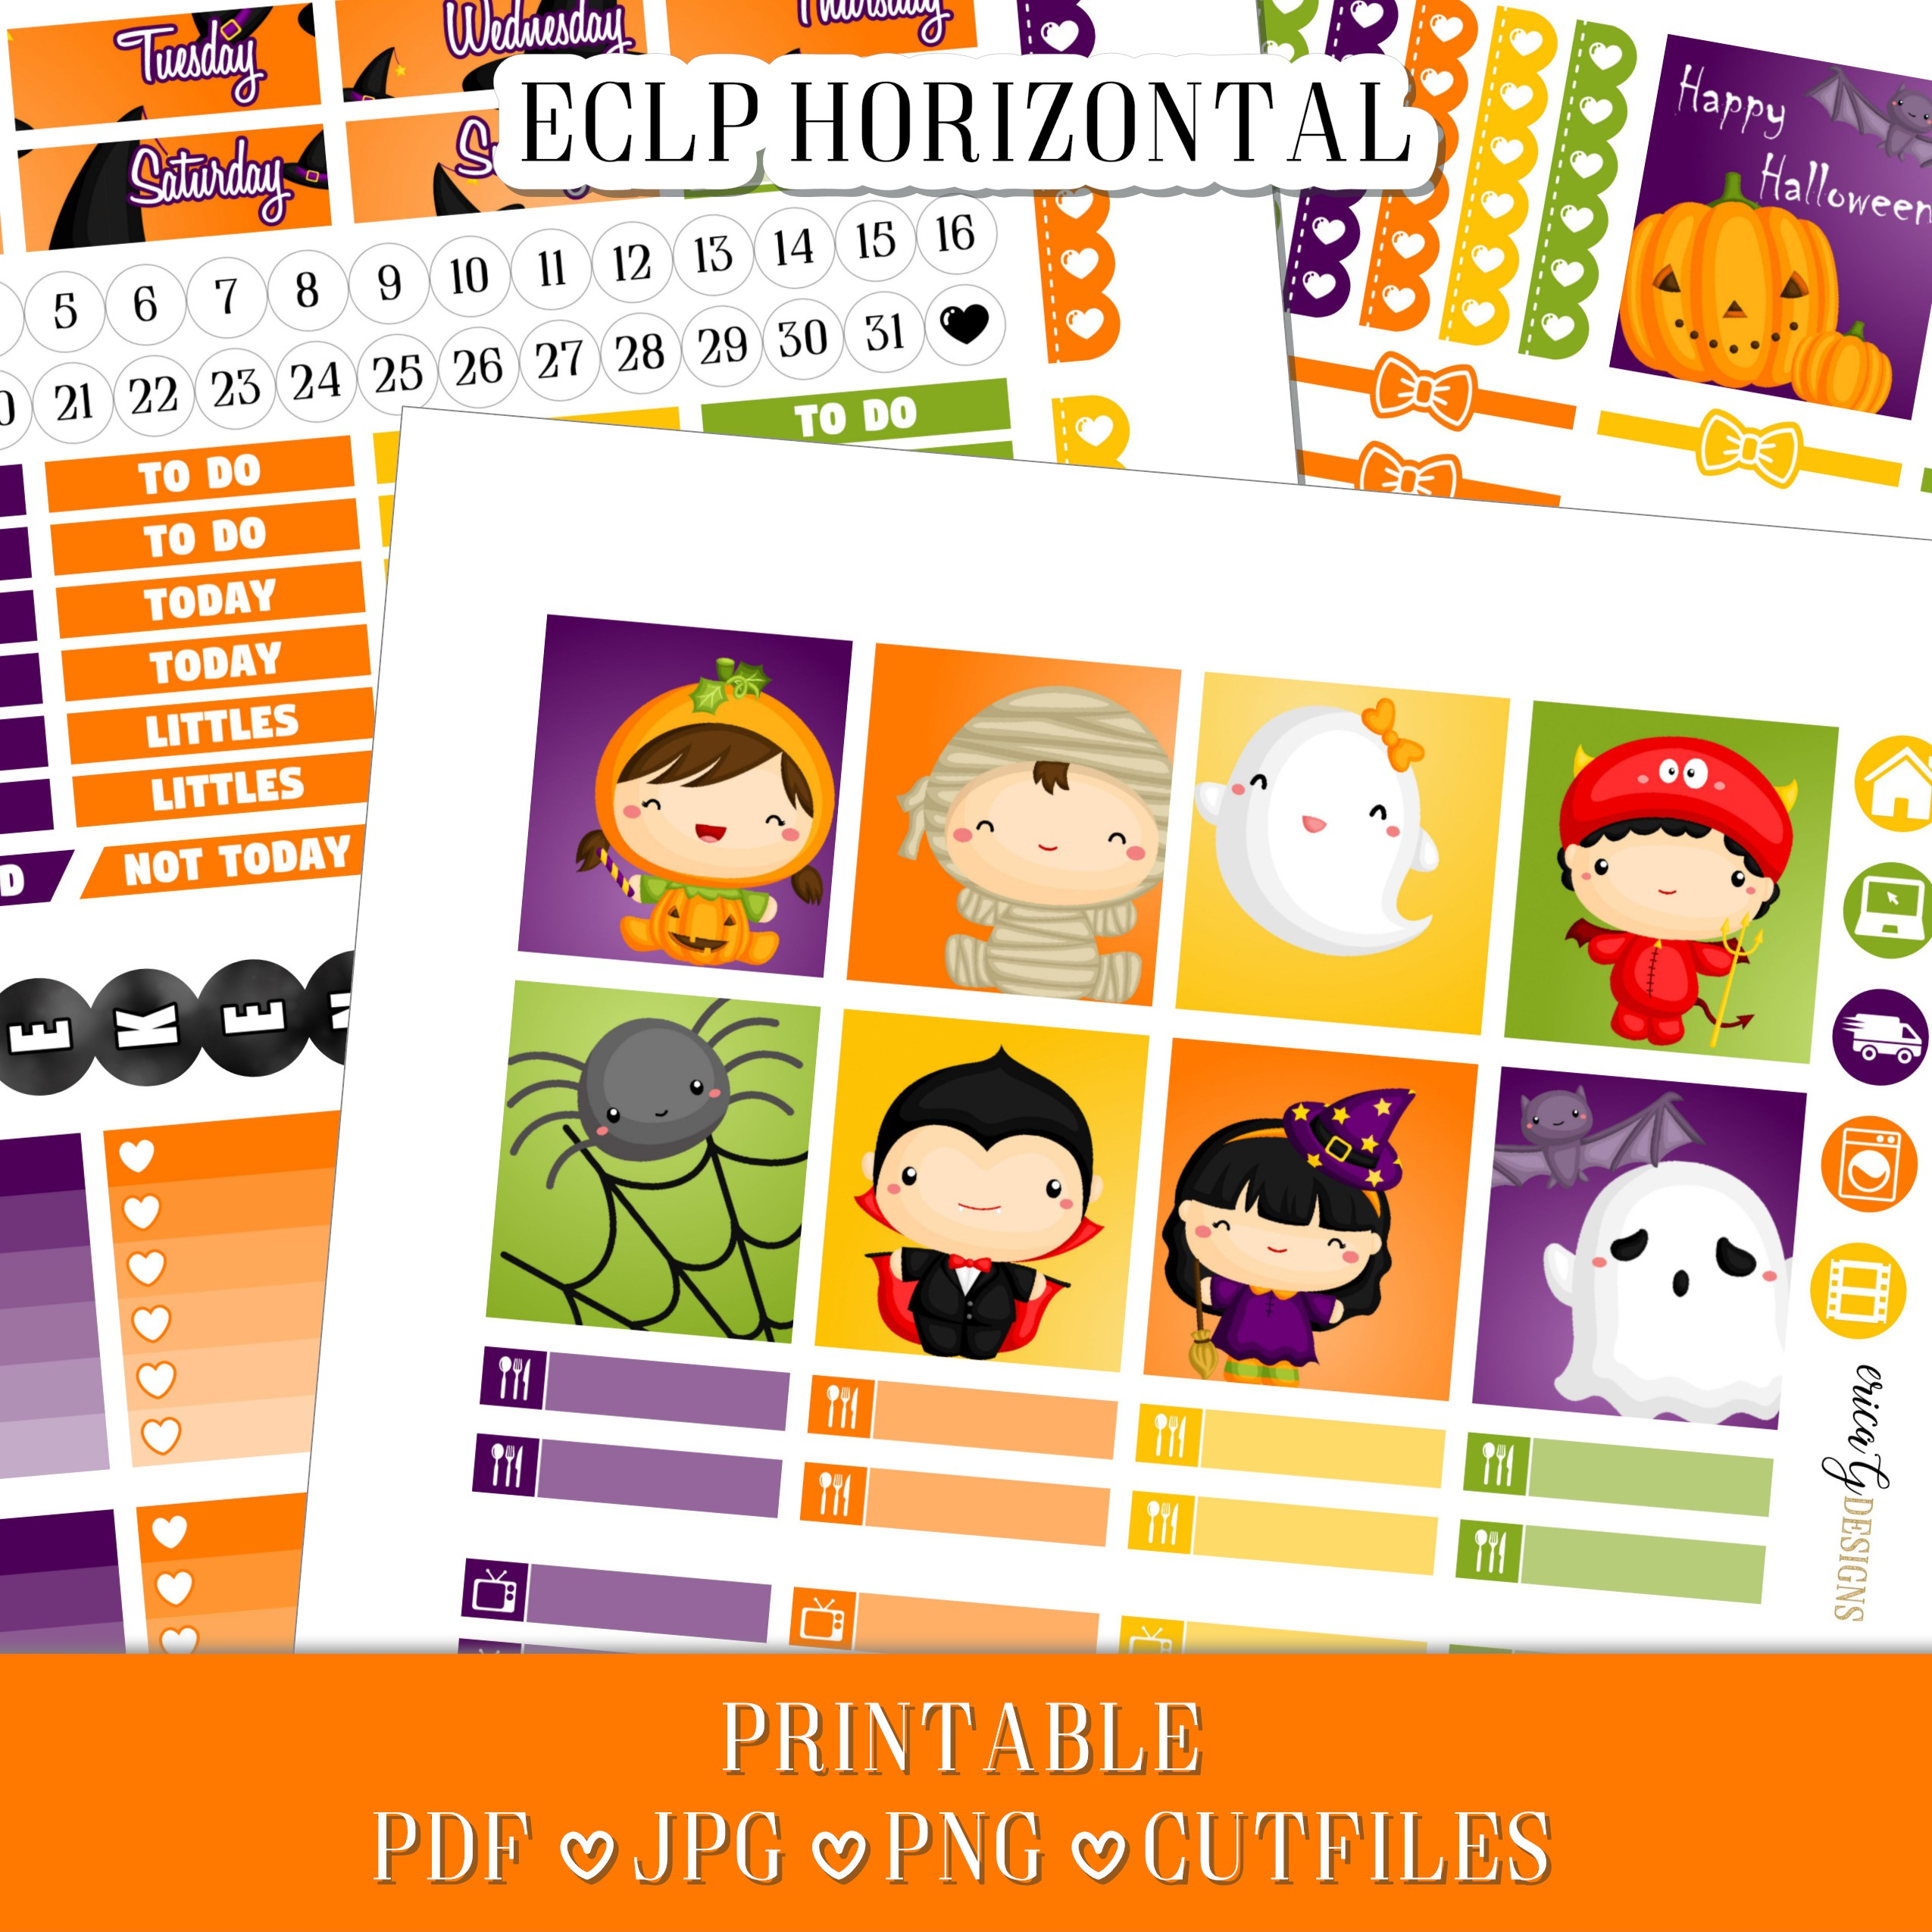 photograph relating to Annie Plans Printables called annie systems printables Archives - Erica G Patterns